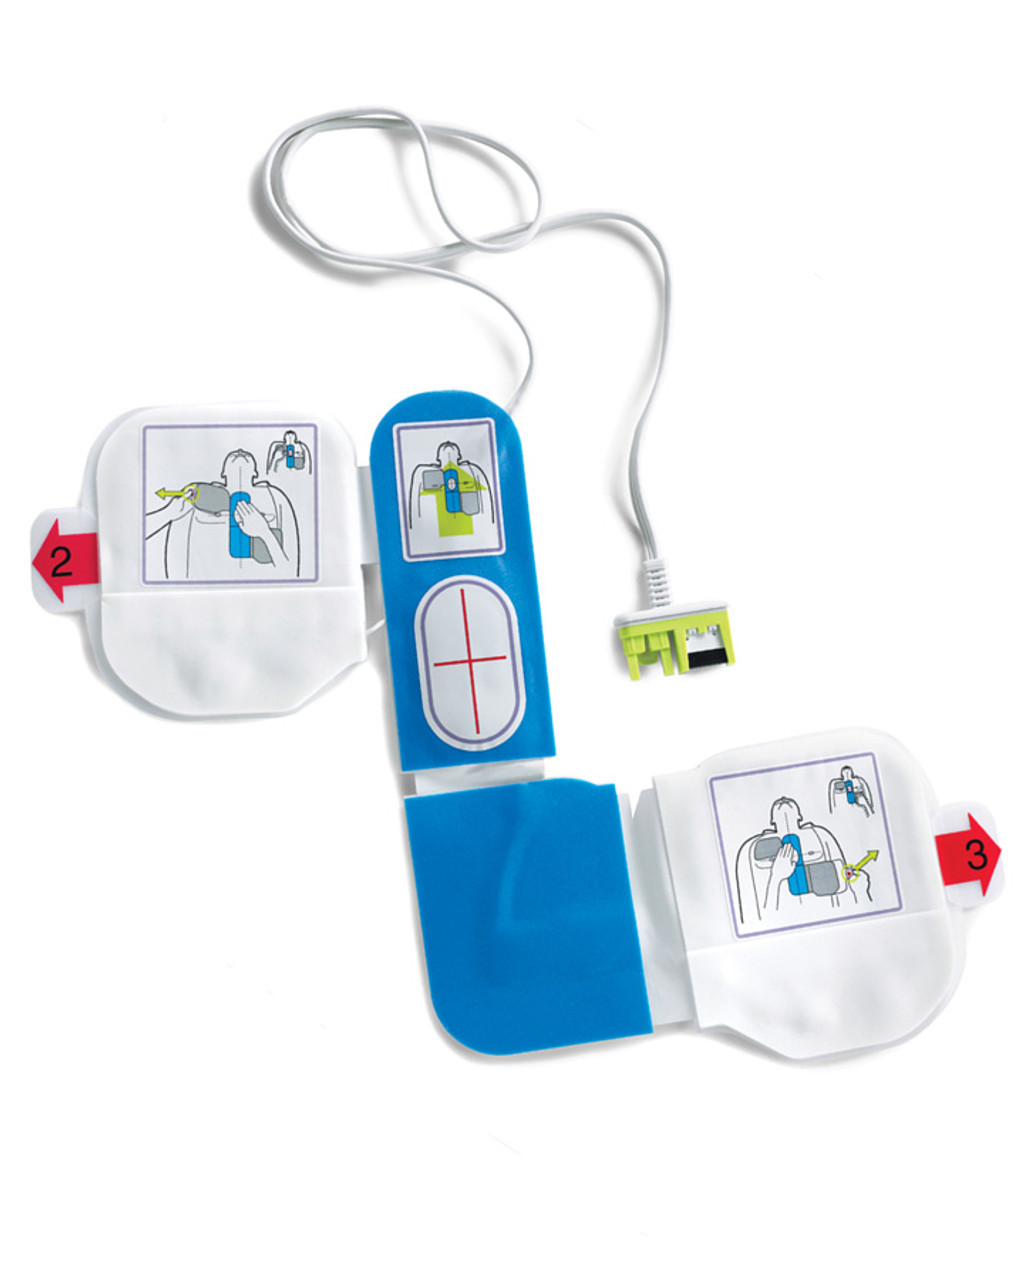 ZOLL AED Plus CPR-D-padz (Adult Electrodes)